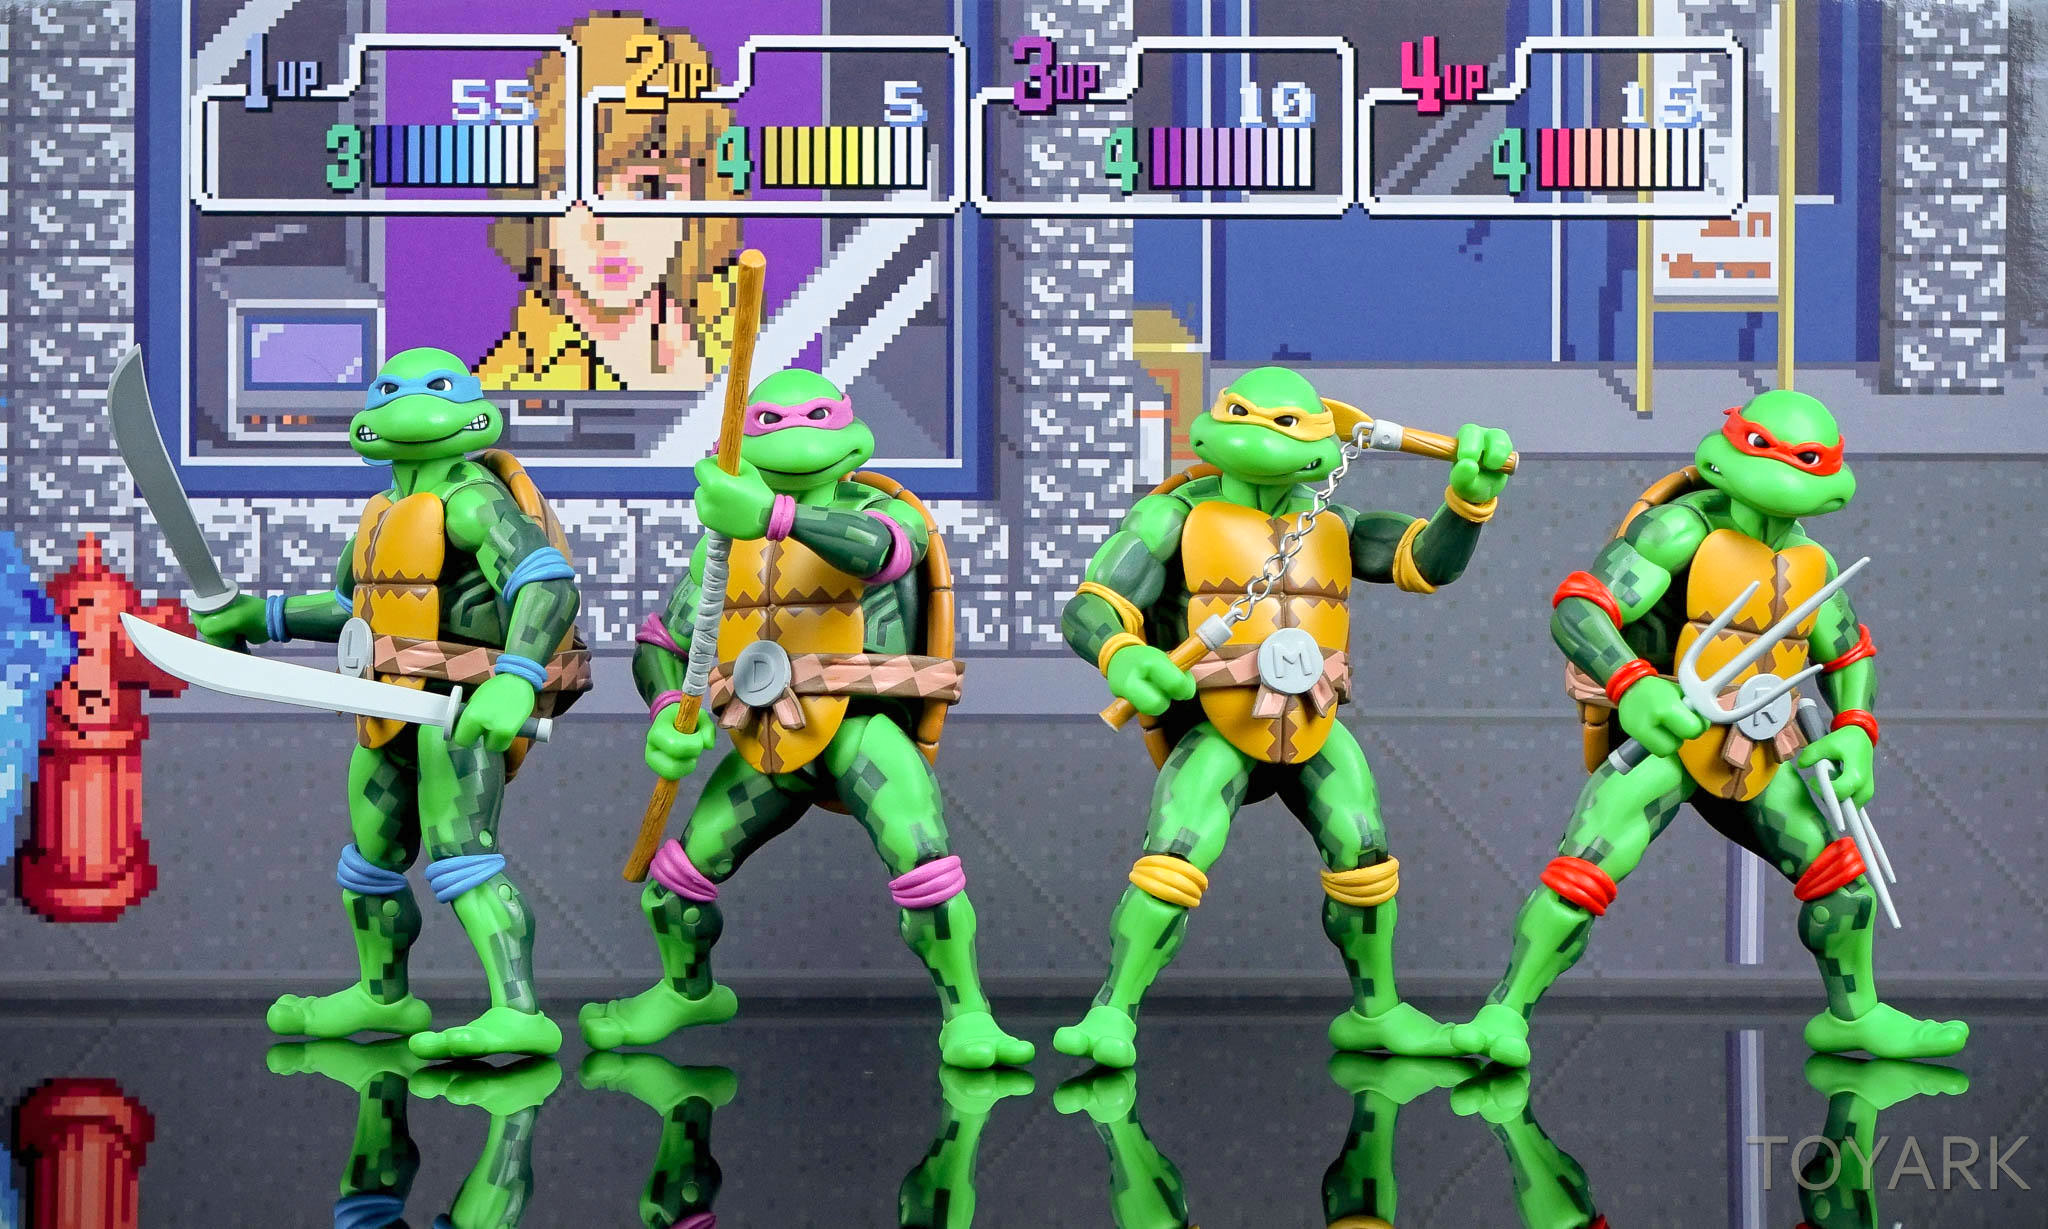 http://news.toyark.com/wp-content/uploads/sites/4/2016/08/SDCC2016-TMNT-Arcade-184.jpg